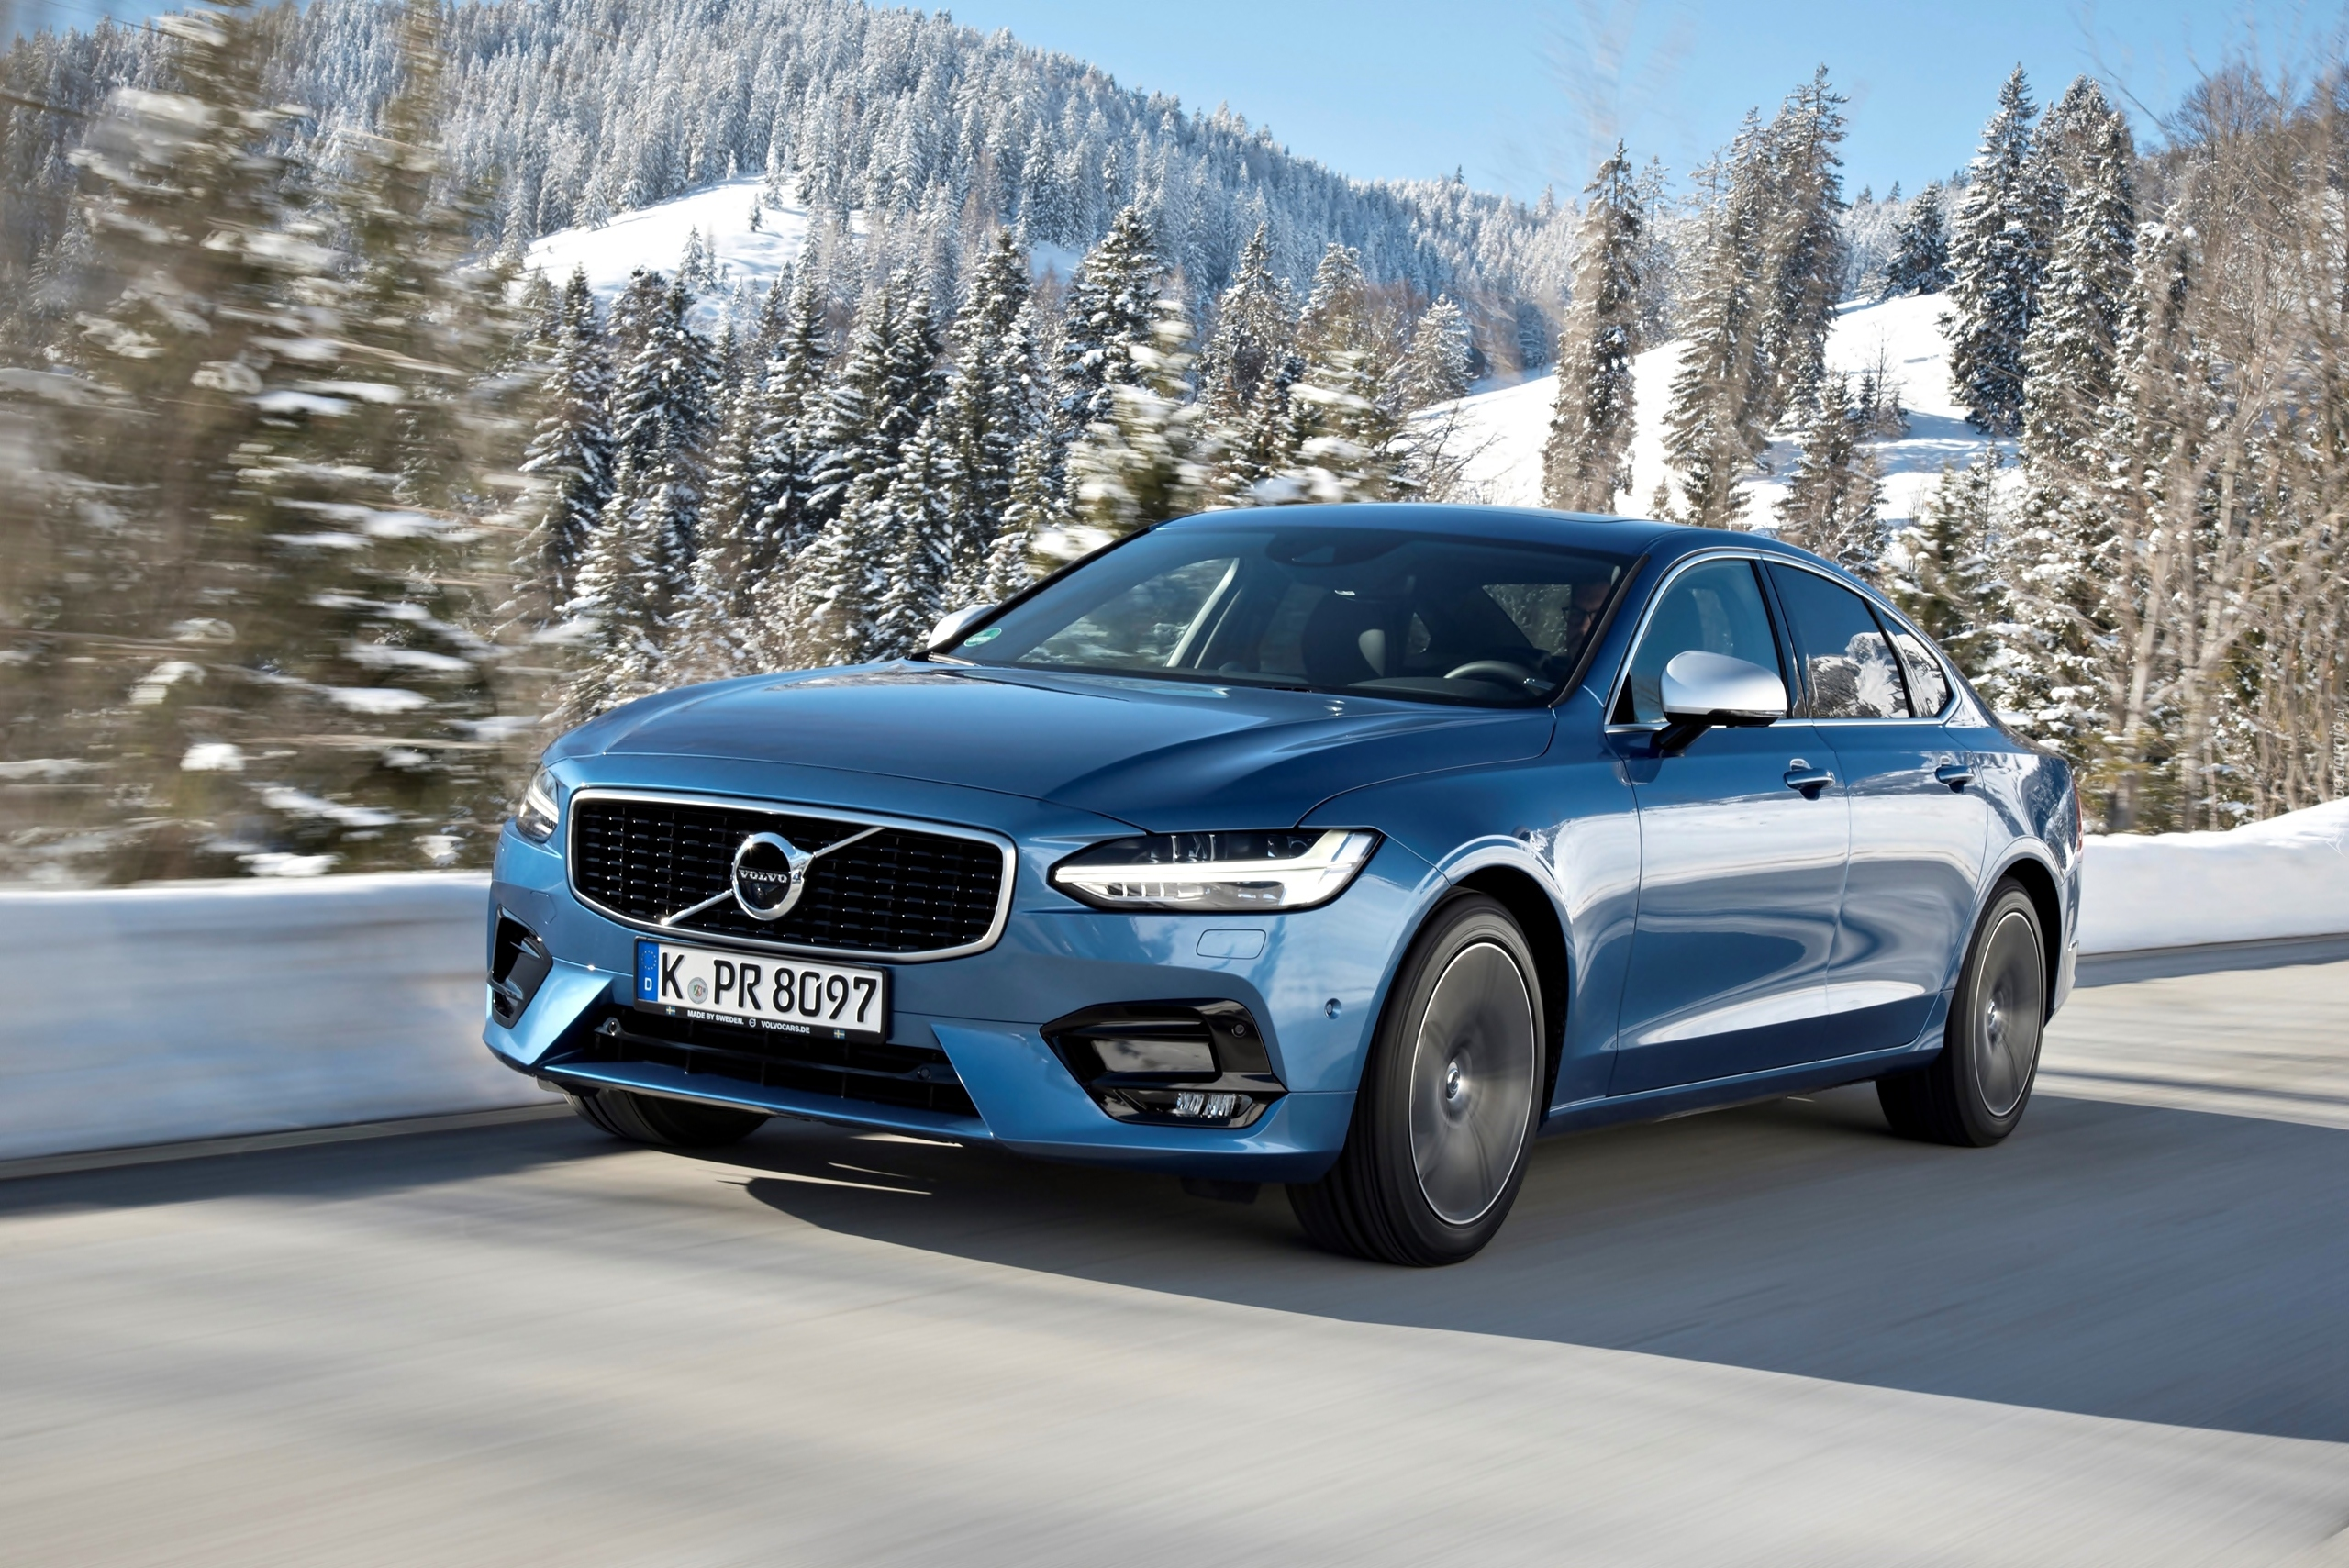 Volvo S90 T5 R Design Sedan Rocznik 2016 HD Wallpapers Download free images and photos [musssic.tk]